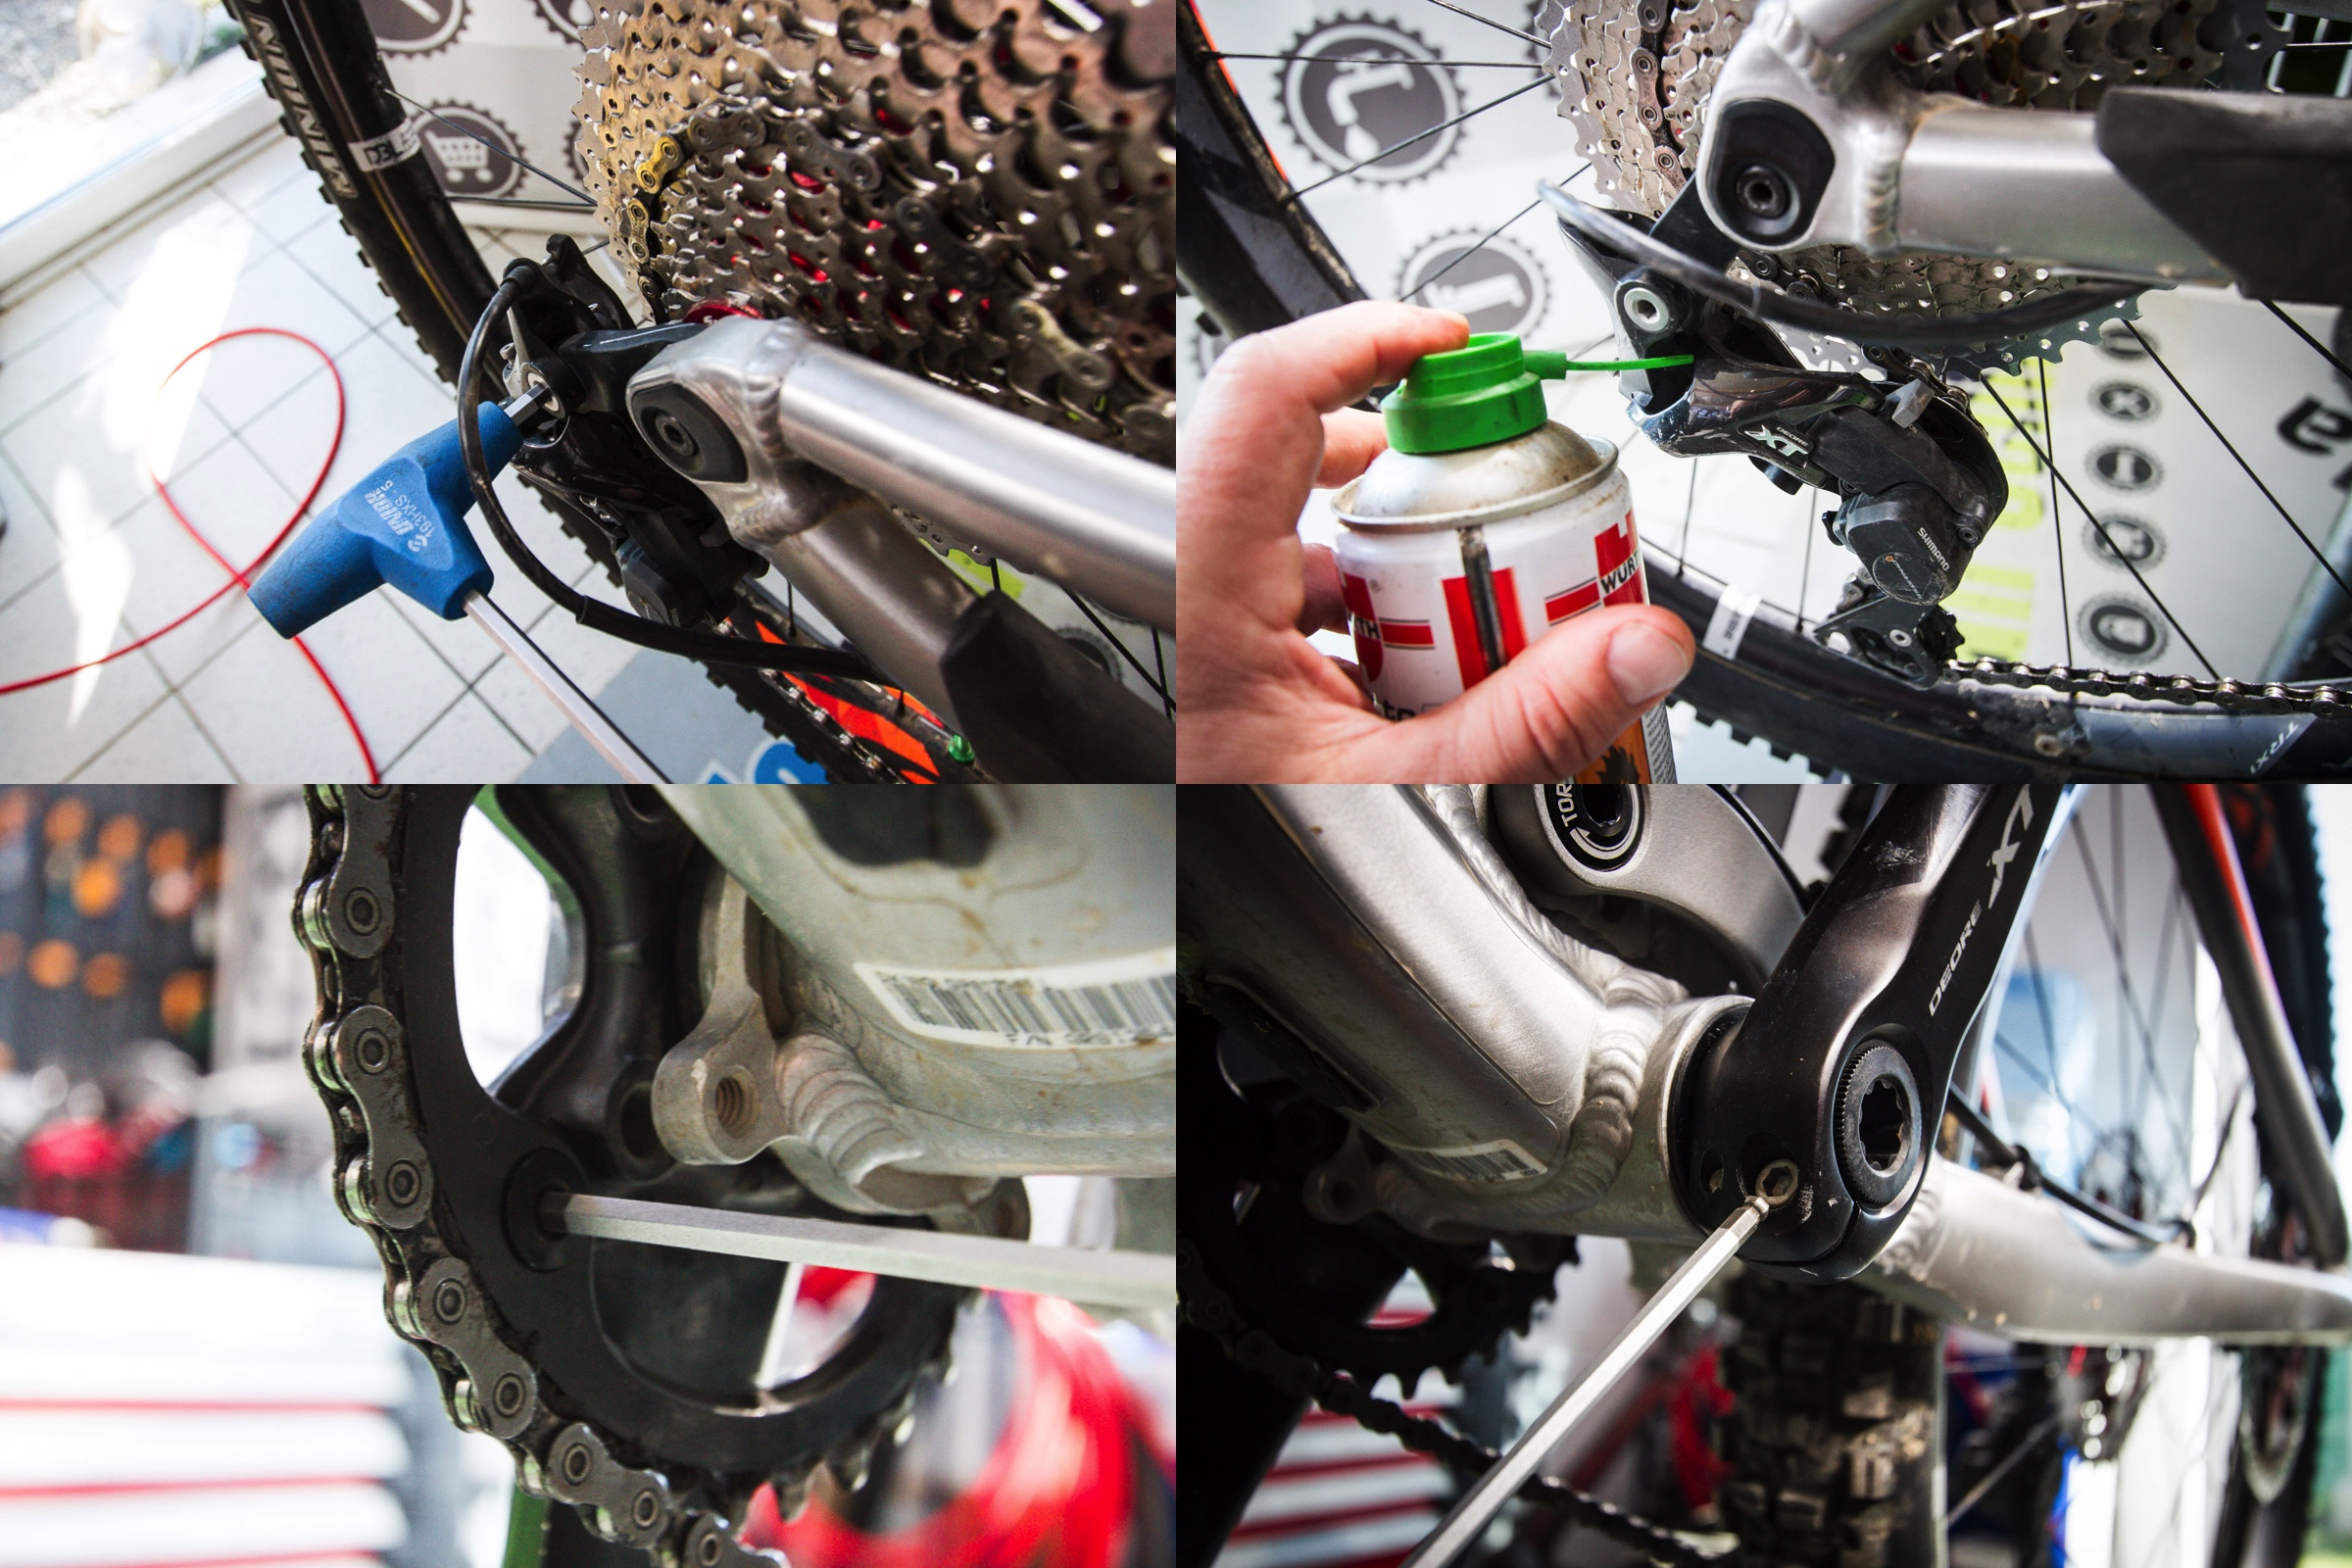 We check the derailleur bolt tightness and also give a quick spray of some non sticky pivot grease. We also check the chainring bolts for tightness and the cranks. Everything should be smooth and without play for a precise ride feeling.